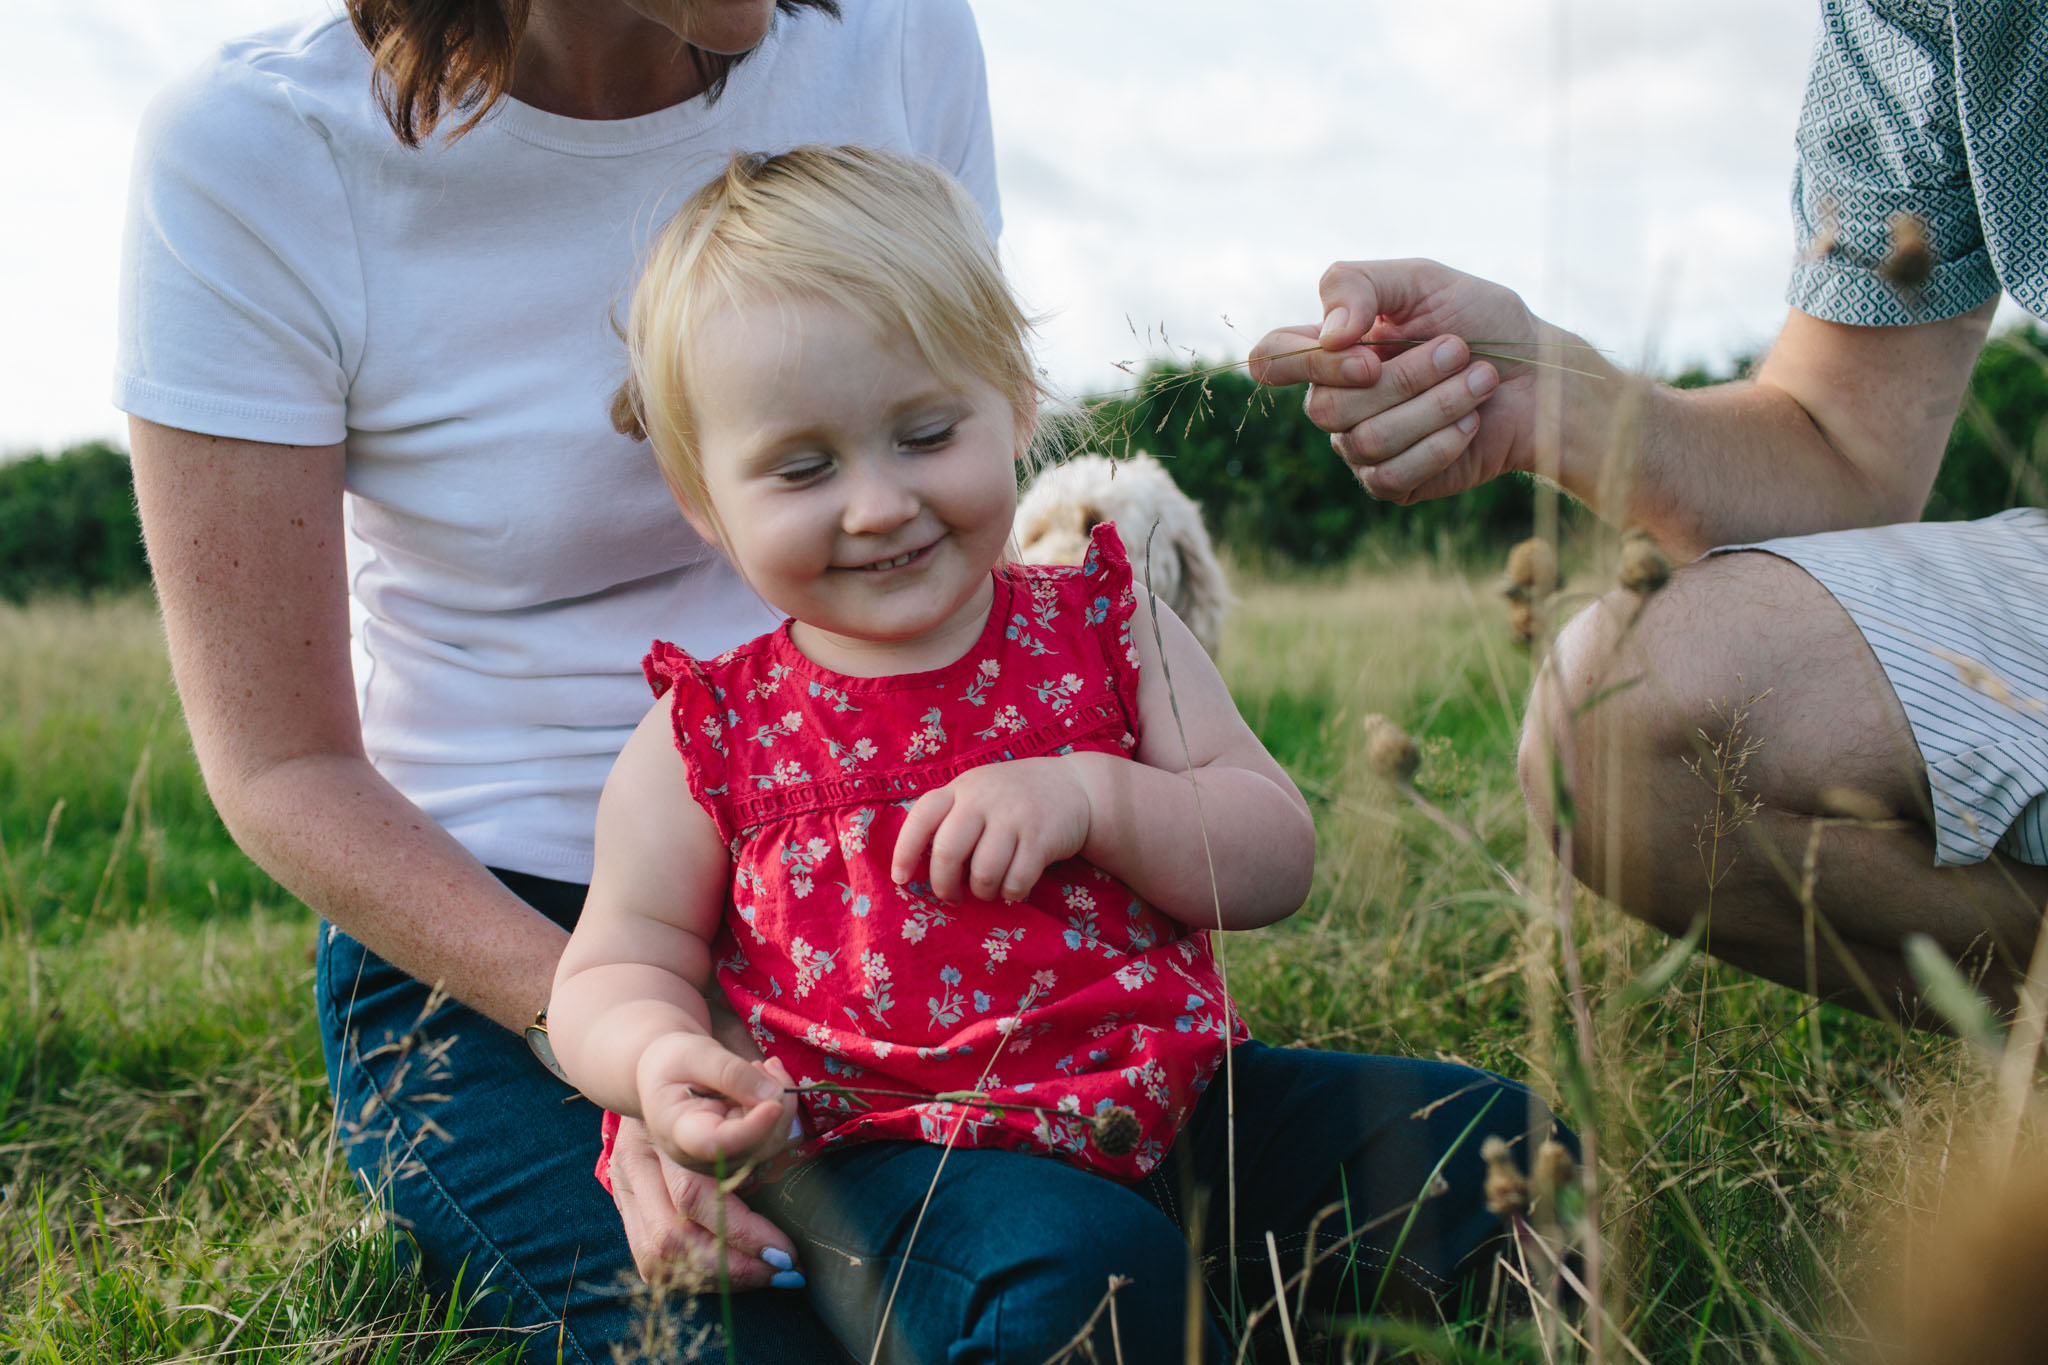 reportage family photographer, horsham, sussex